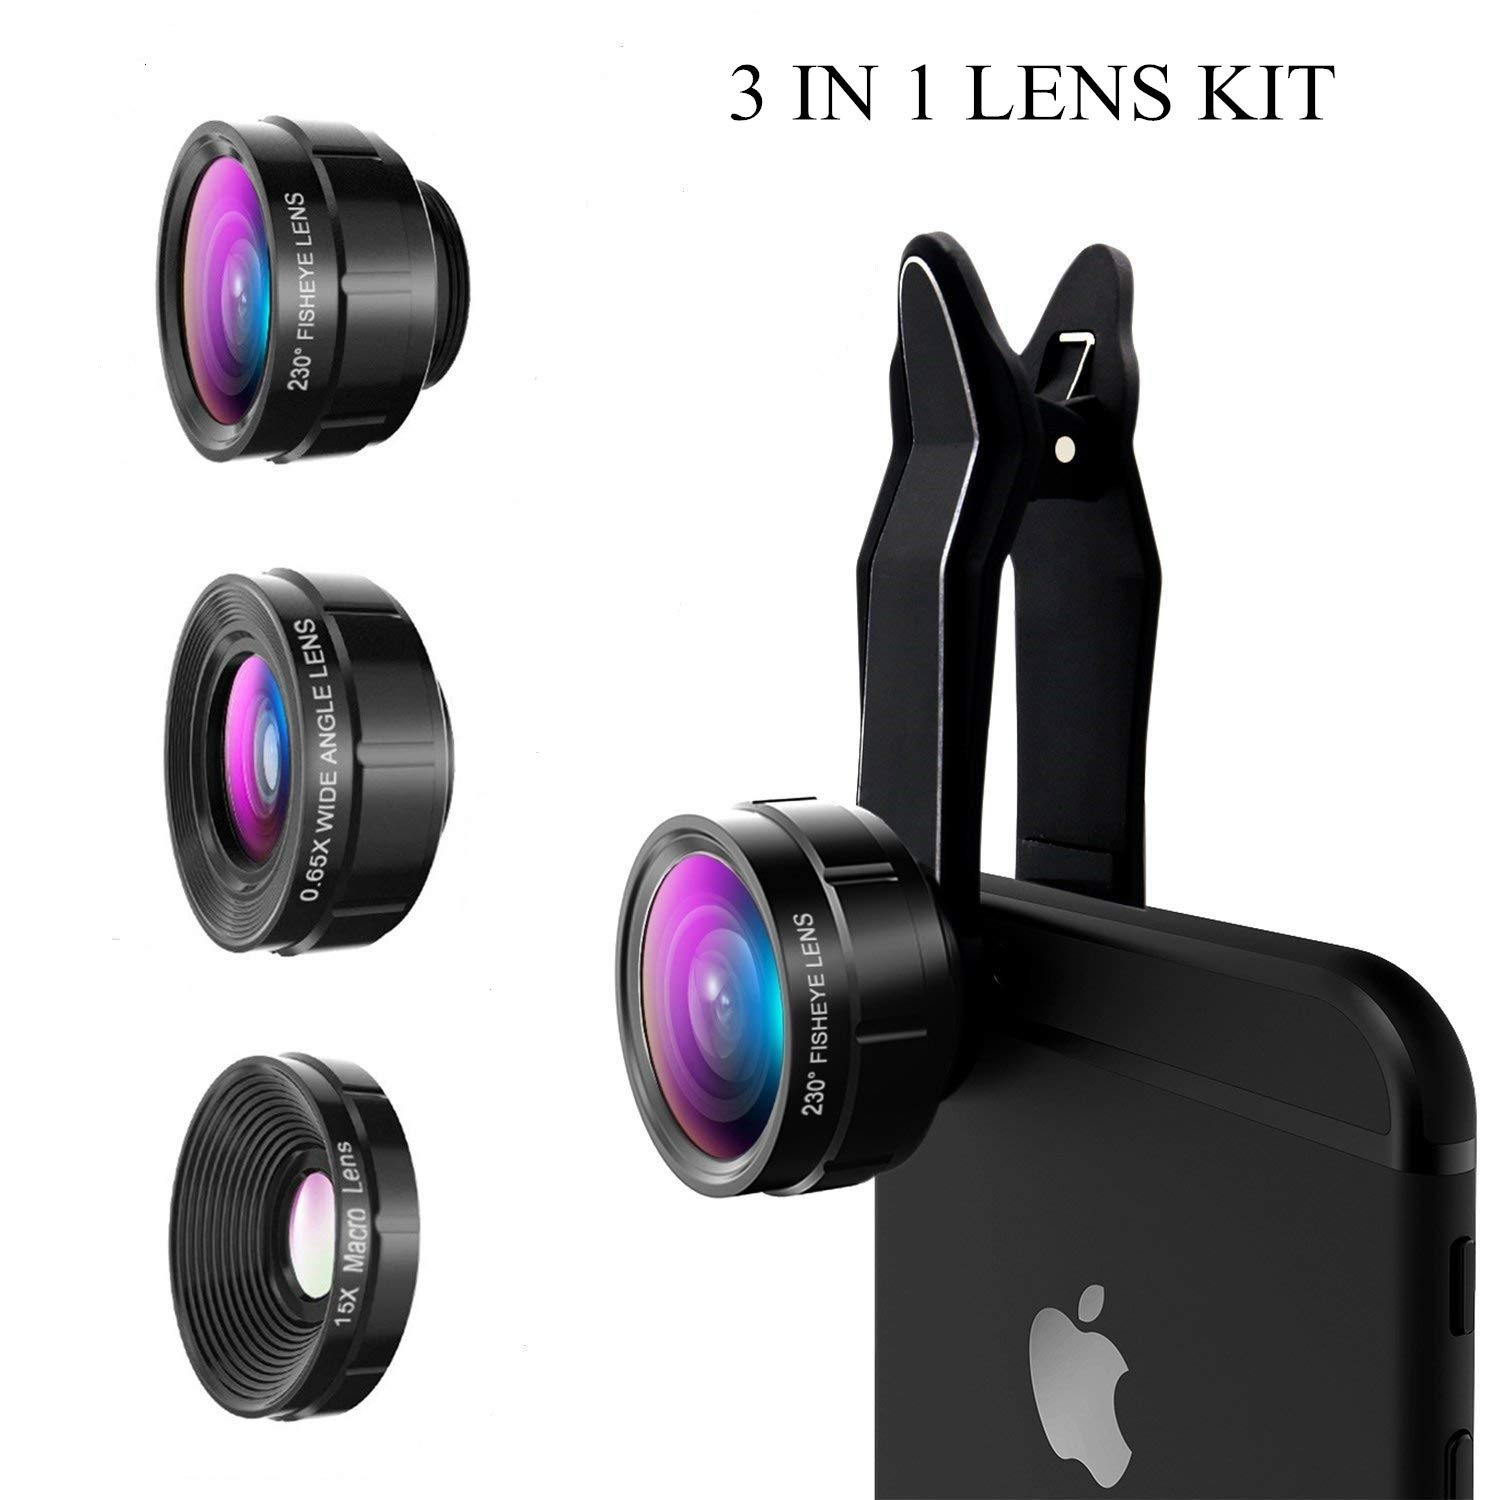 Universal Professional HD Camera Lens, icyber cellphone camera lens with 230°Fish Eye Lens Wide Angle Lens Macro Lens 3 in 1 Camera Lens Kits for iPhone 7 6 6s plus 5 5s 5c 4s ipad Samsung S8/S7/S6